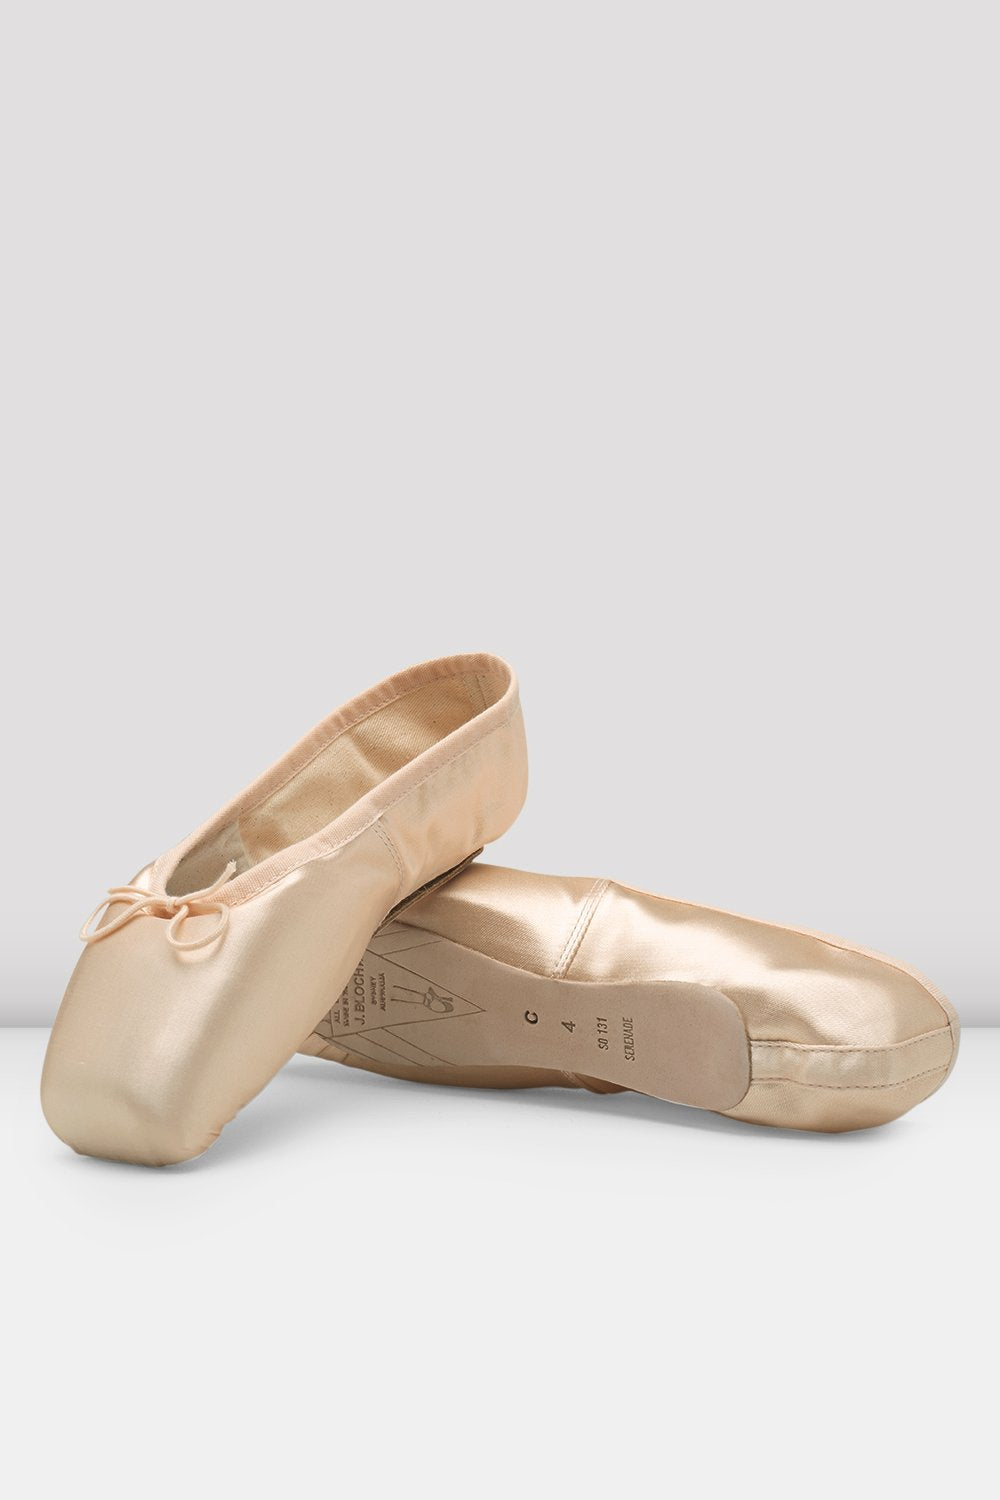 Serenade Pointe Shoes - BLOCH US